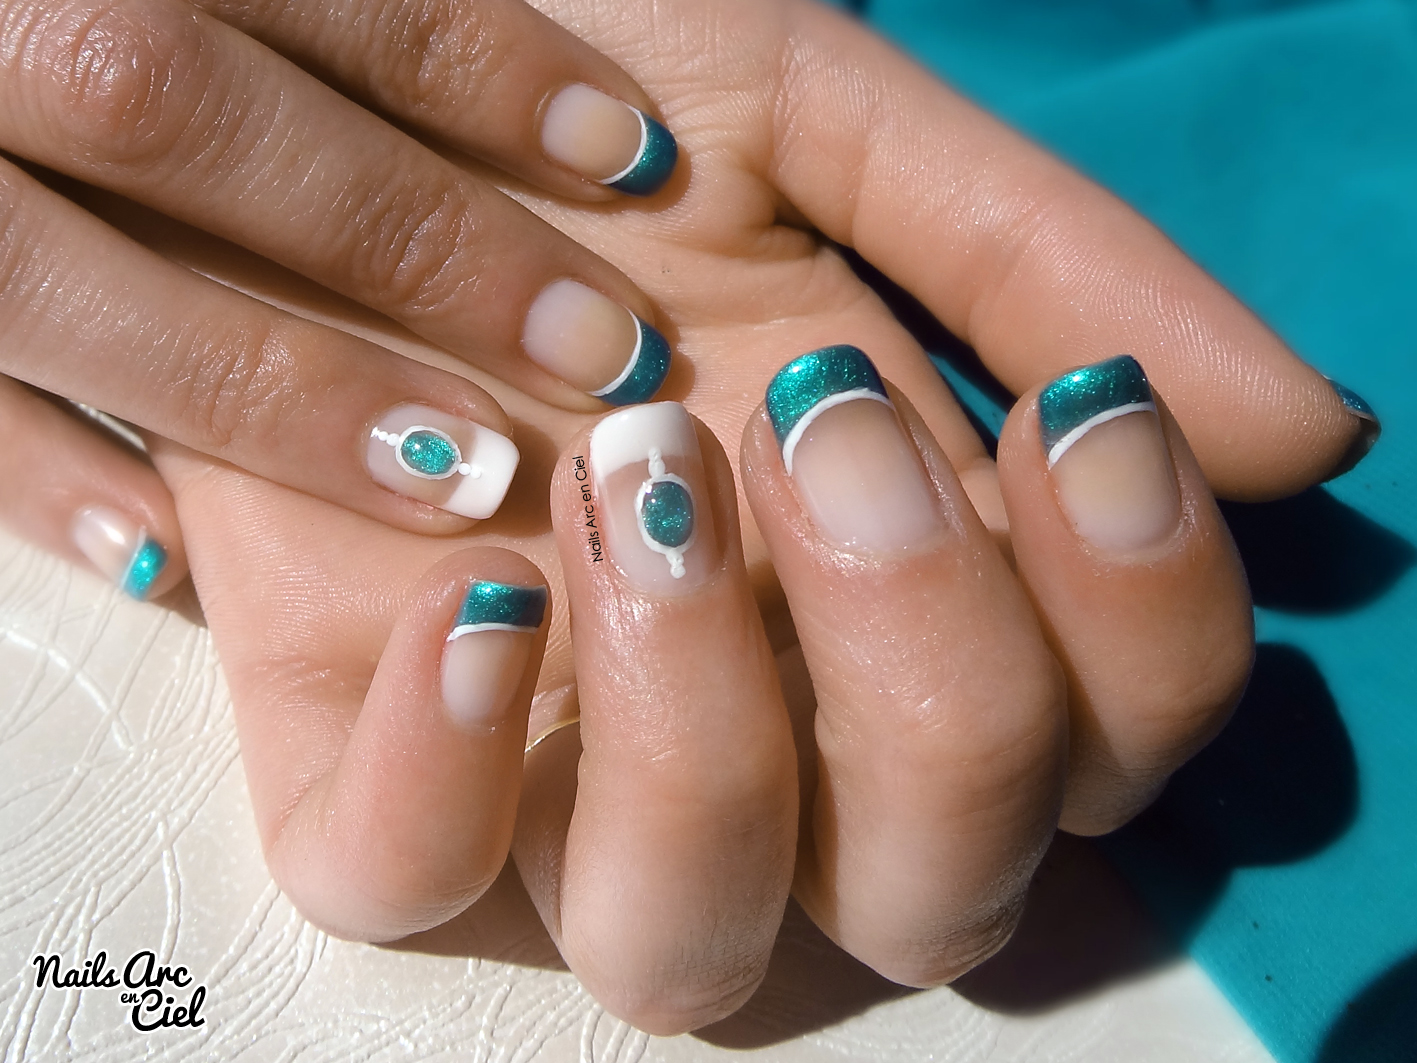 nails arc en ciel nail art pierre liquide turquoise. Black Bedroom Furniture Sets. Home Design Ideas